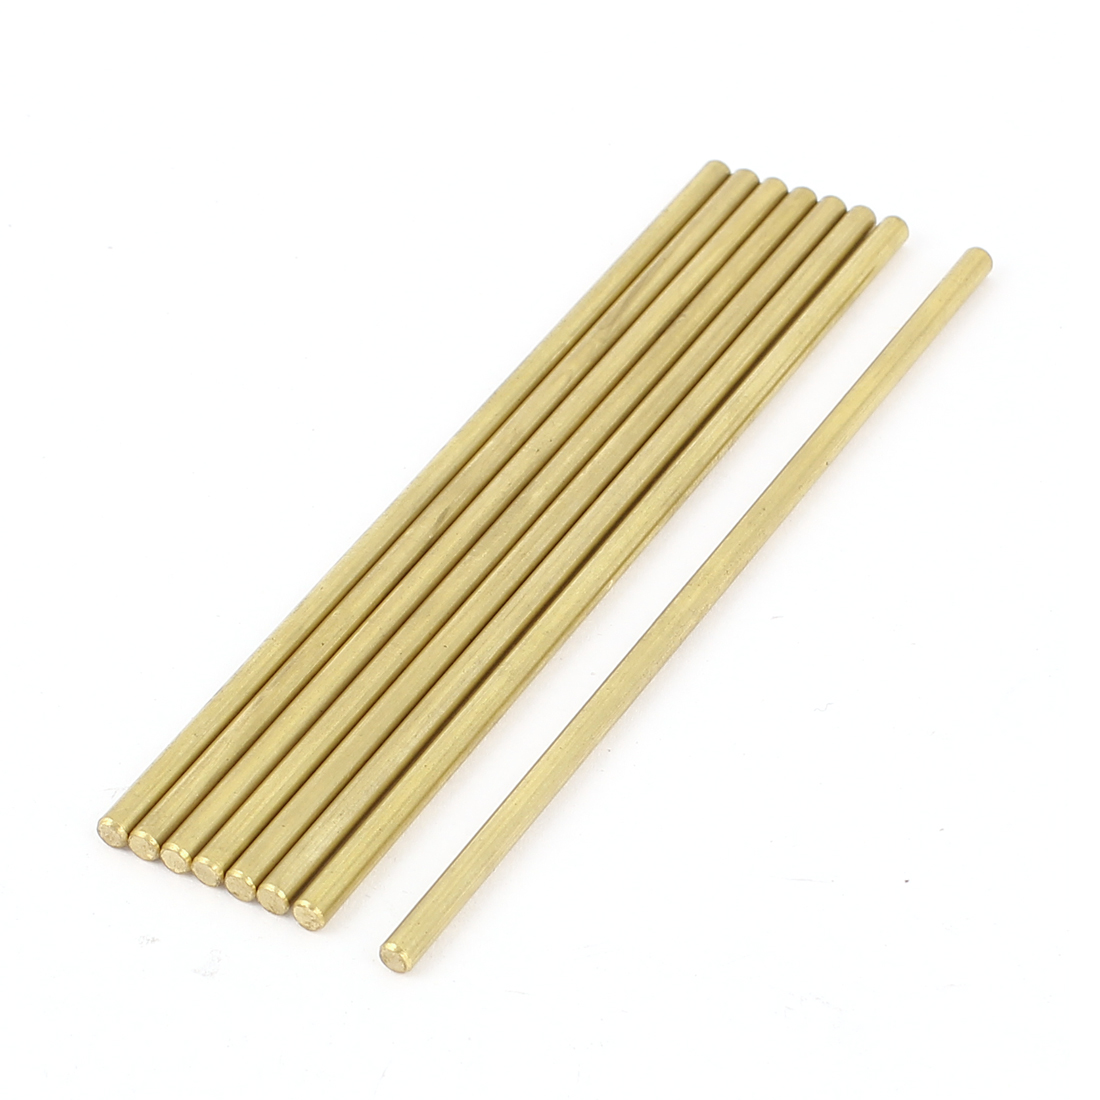 8 Pcs 3mm Dia 100mm Length Brass Solid Round Axle Rod Bar for DIY RC Model Airplane